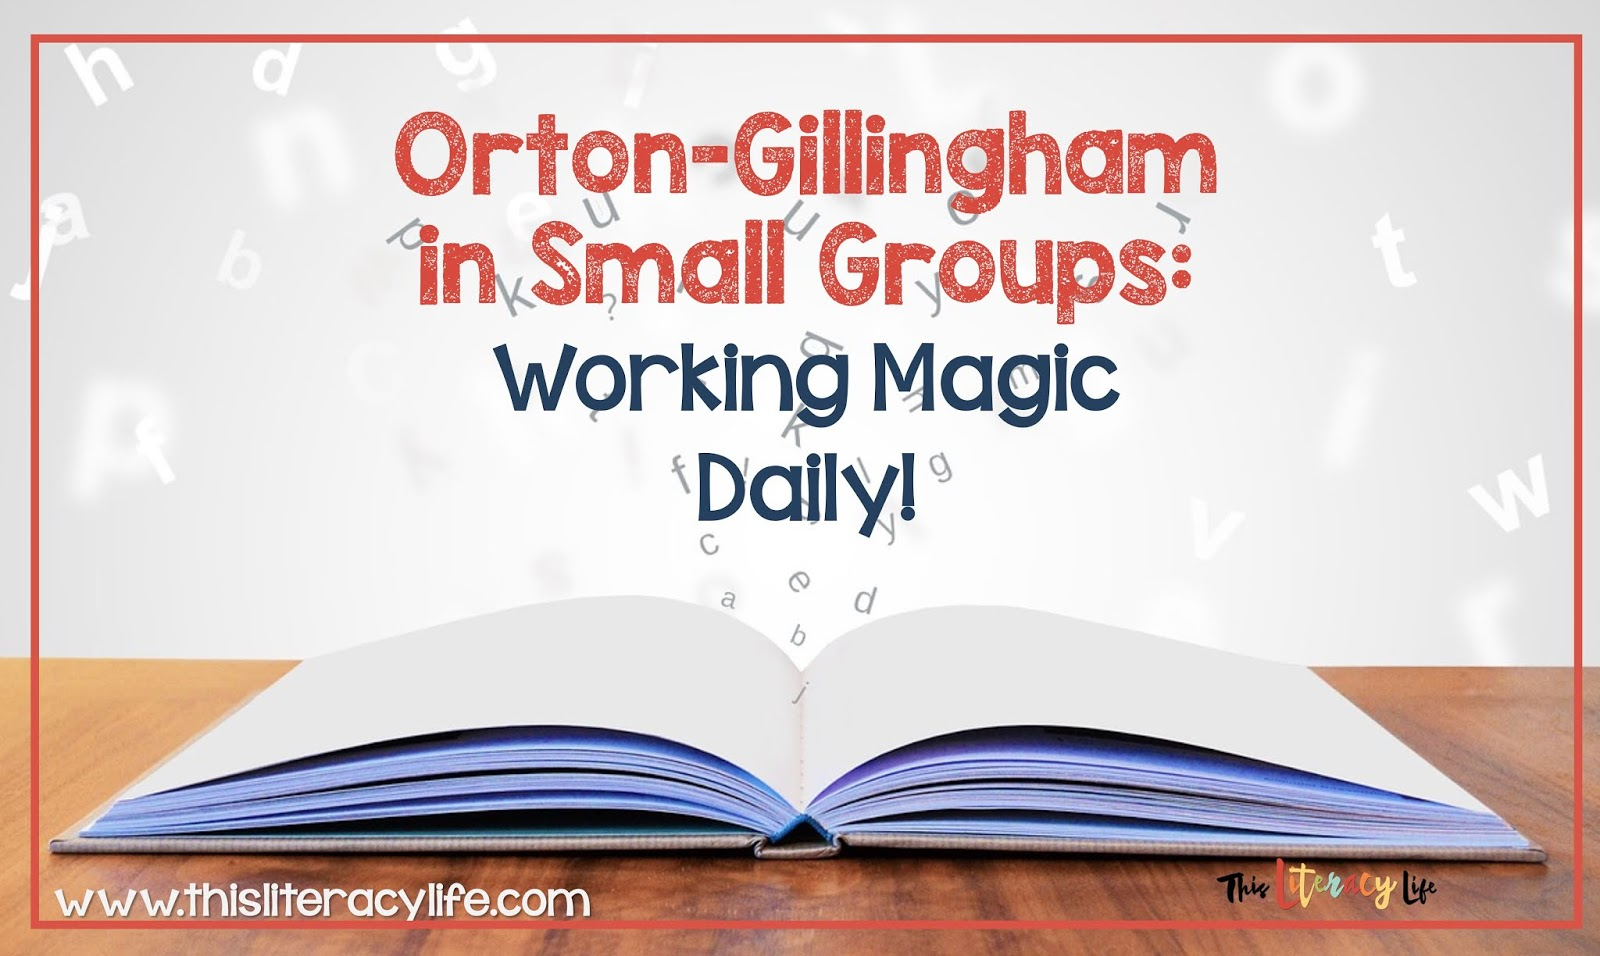 Teaching students with the Orton-Gillingham method helps students learn and use phonics skills to decode words. Small group instruction with OG can help all students succeed with reading every day.